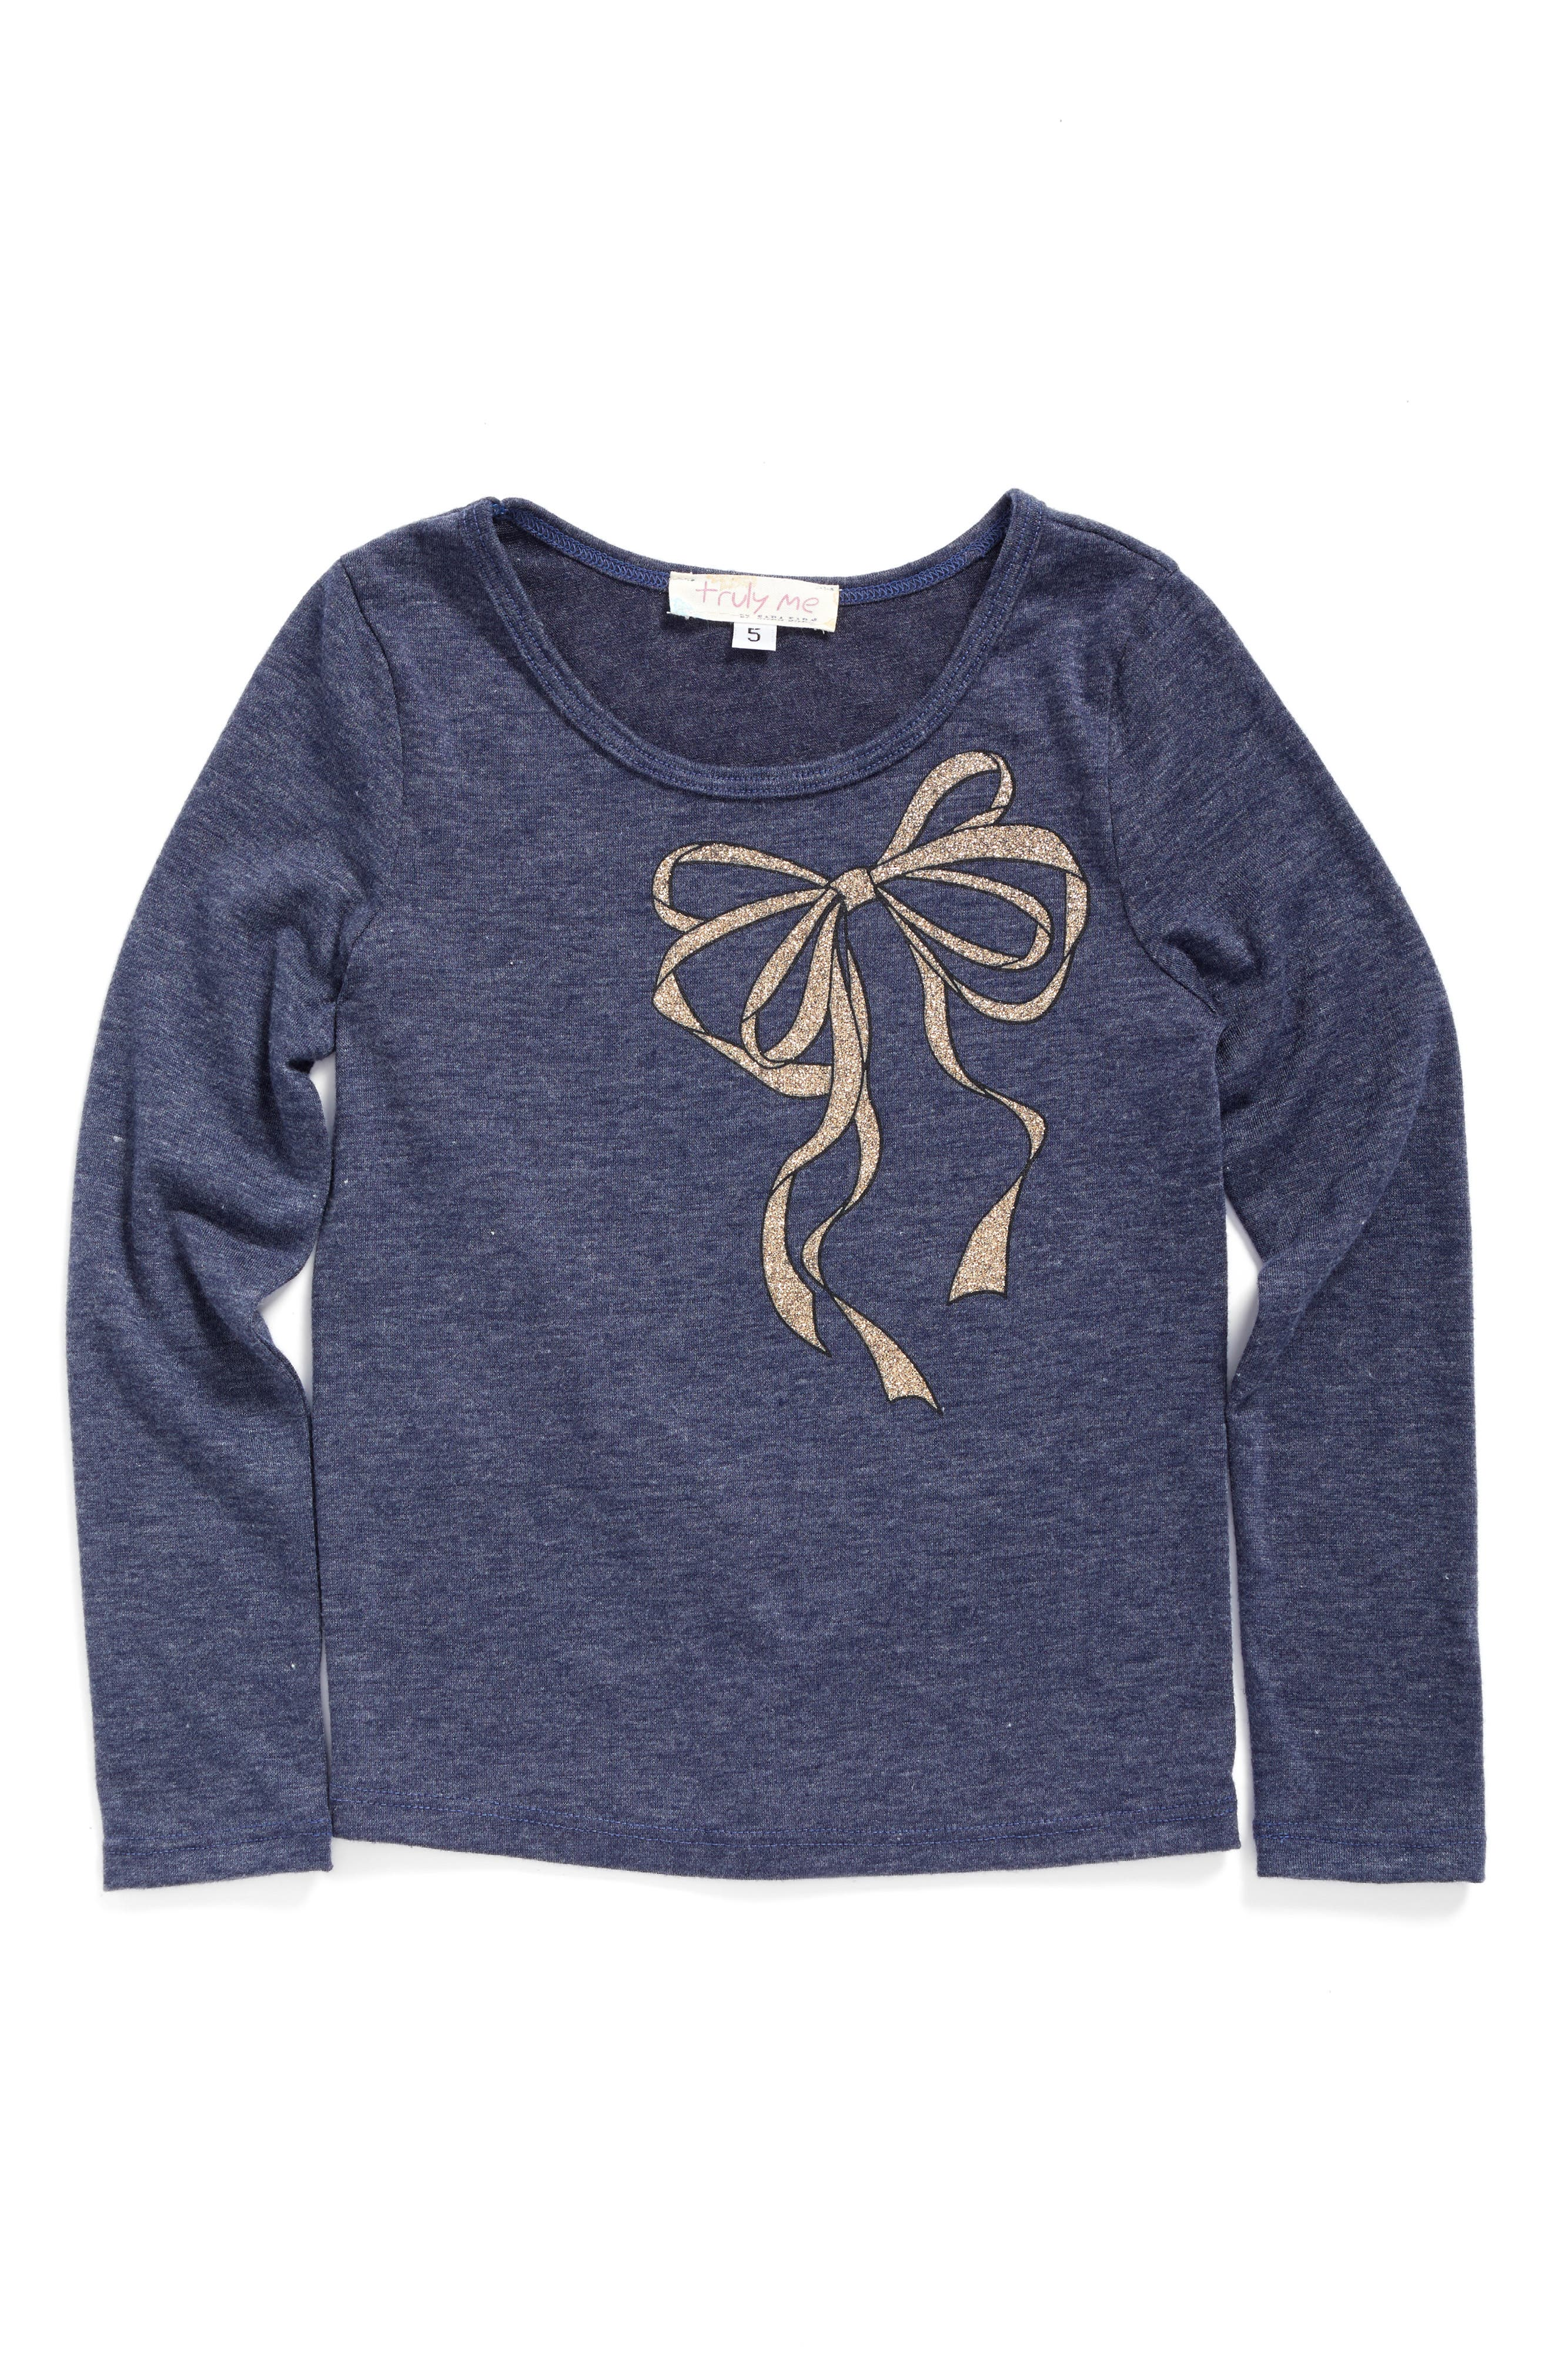 TRULY ME Glitter Bow Tee